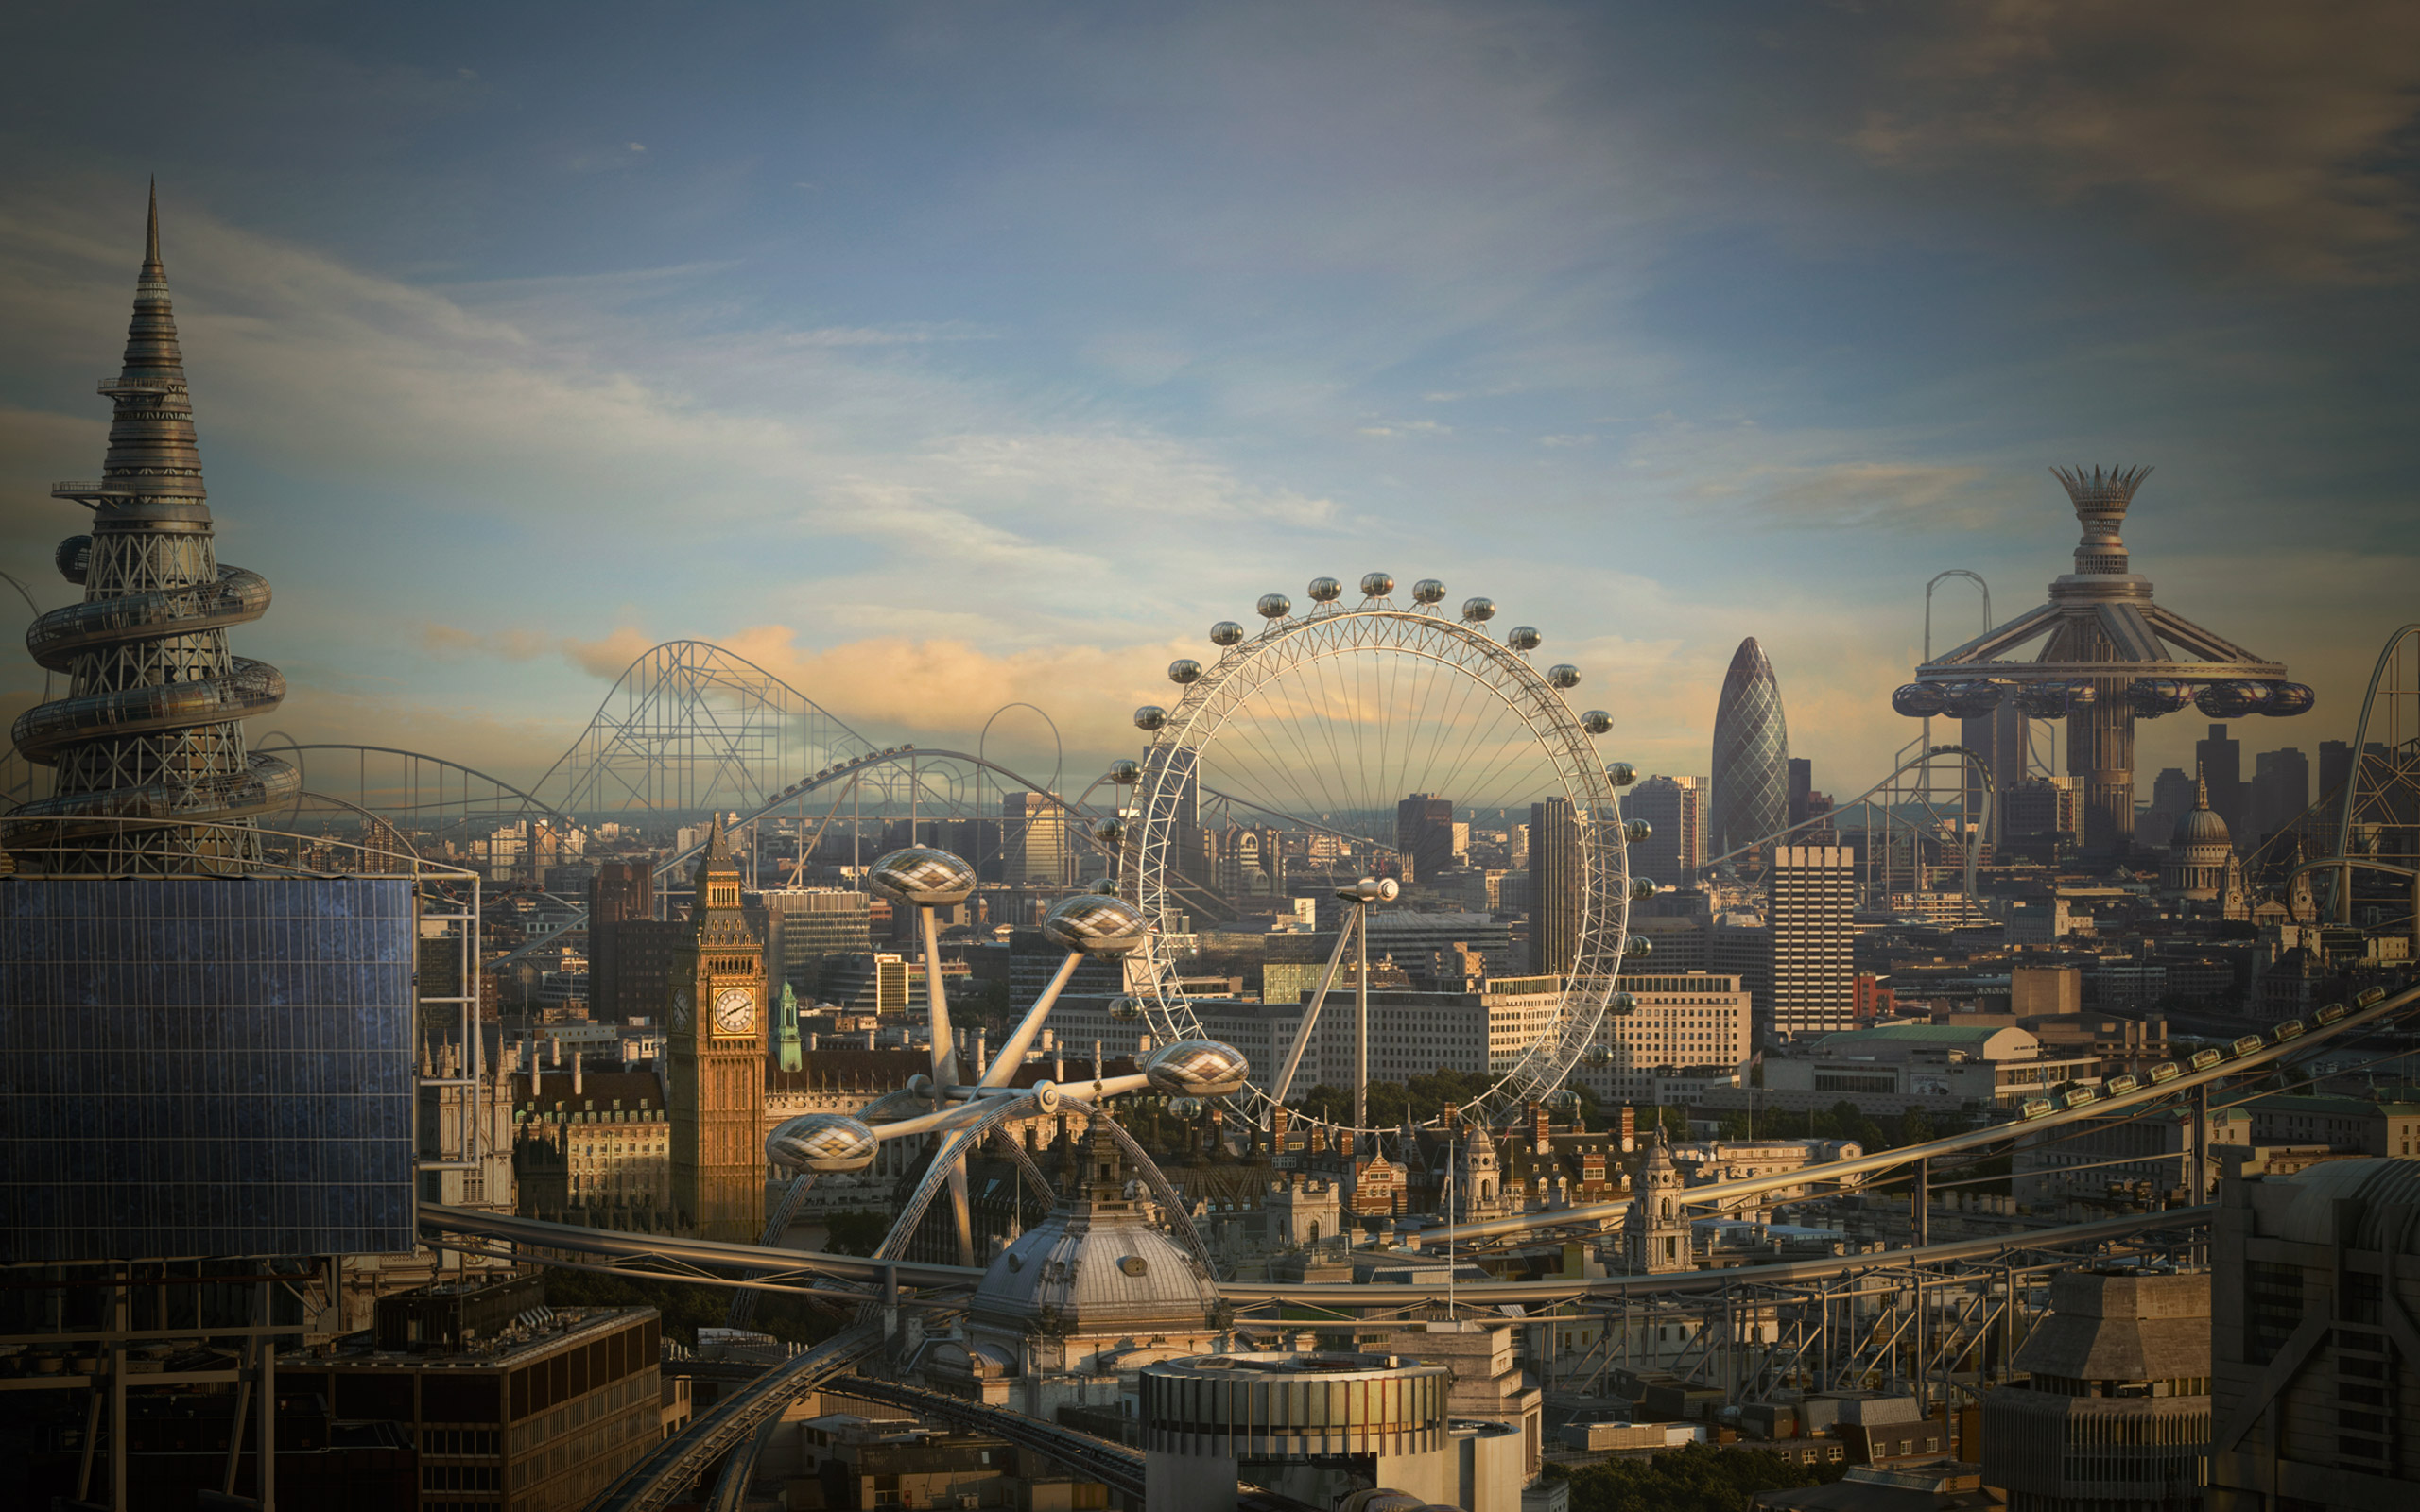 Hd wallpaper london - London We Present Collection Of London Hd Wallpapers